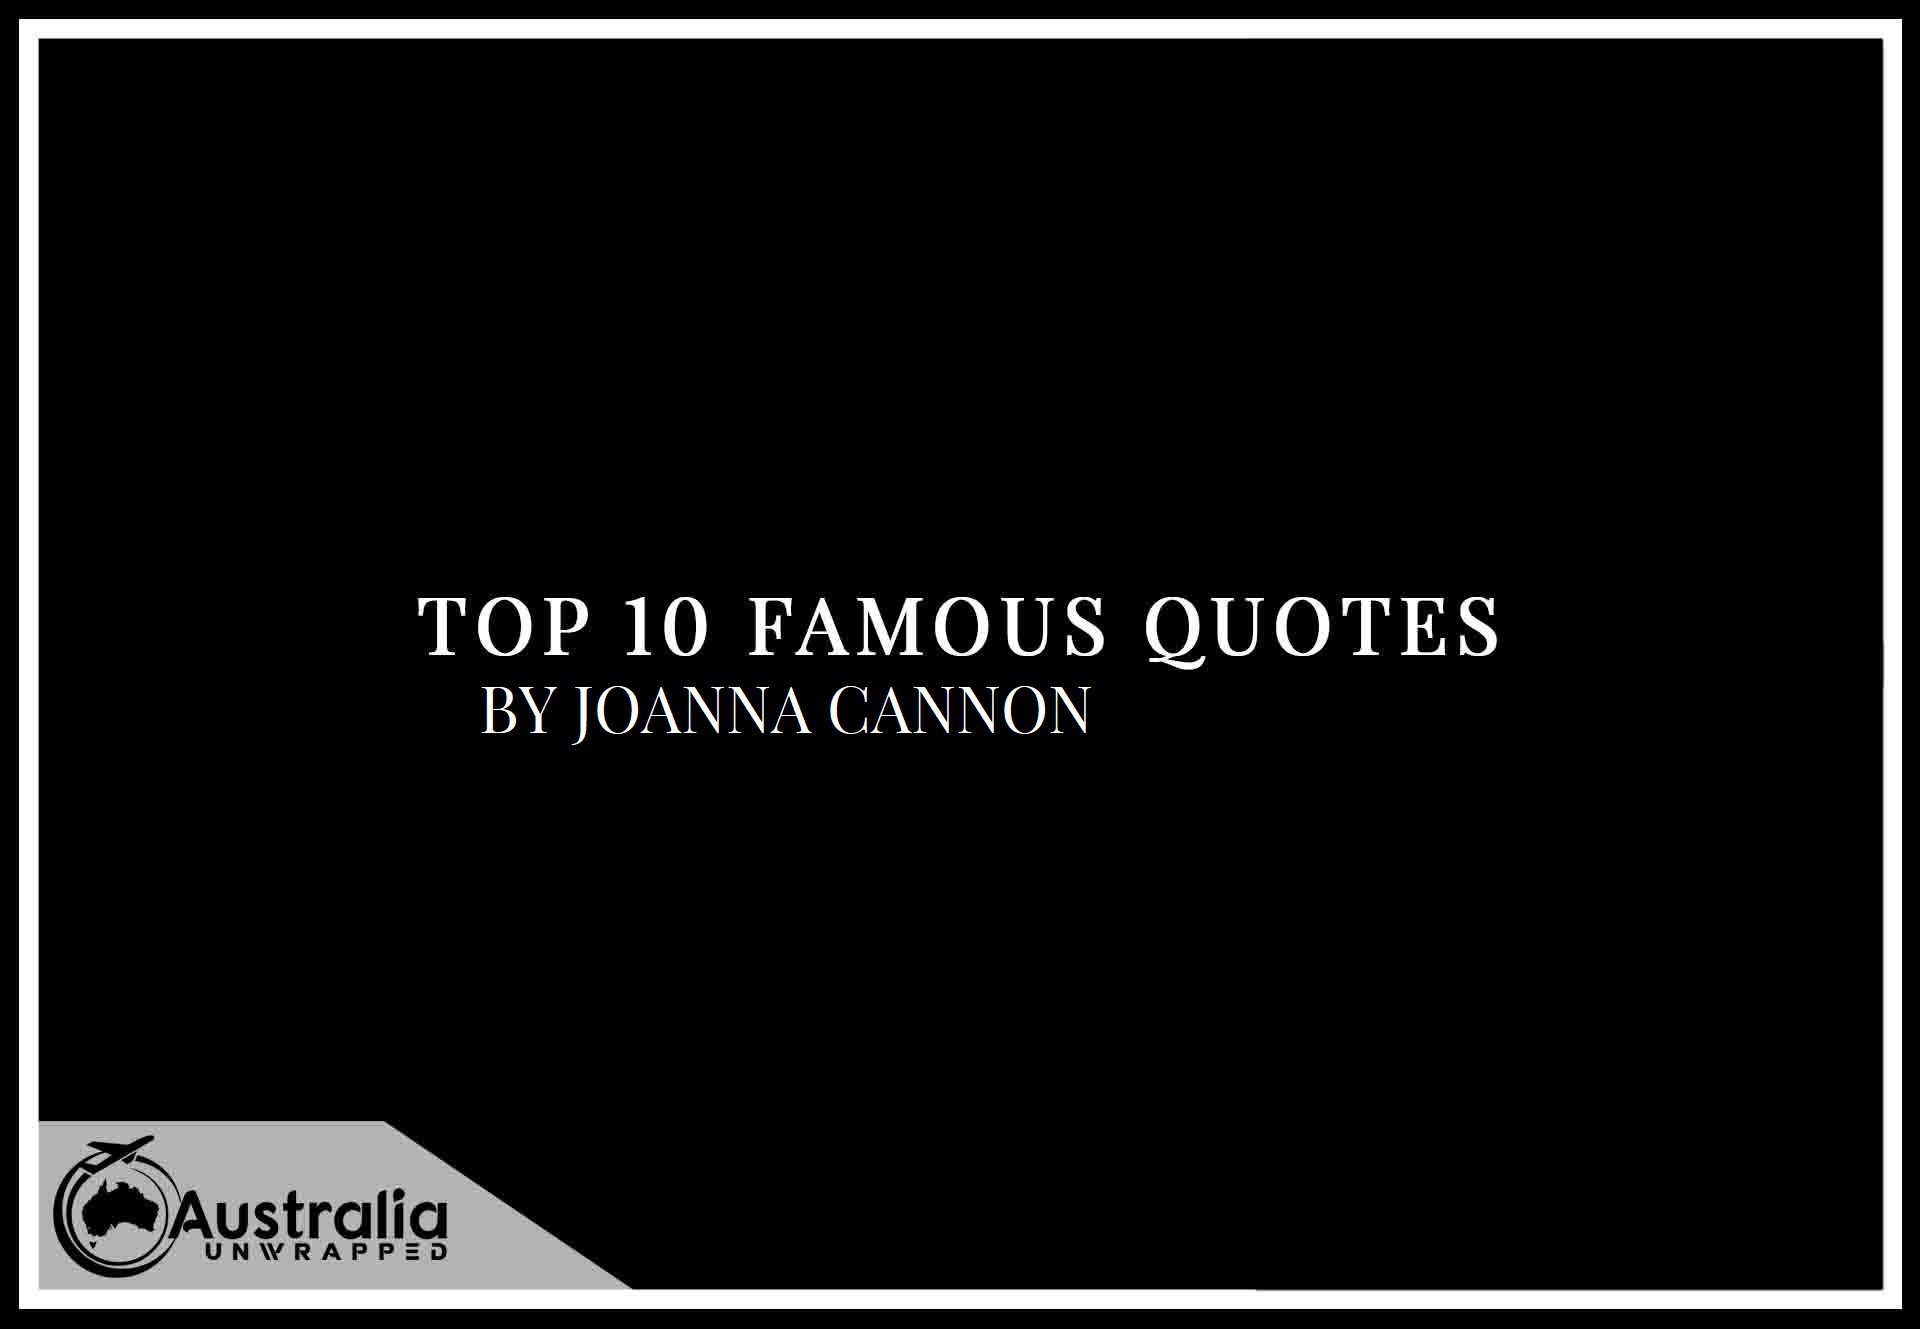 Top 10 Famous Quotes by Author Joanna Cannon